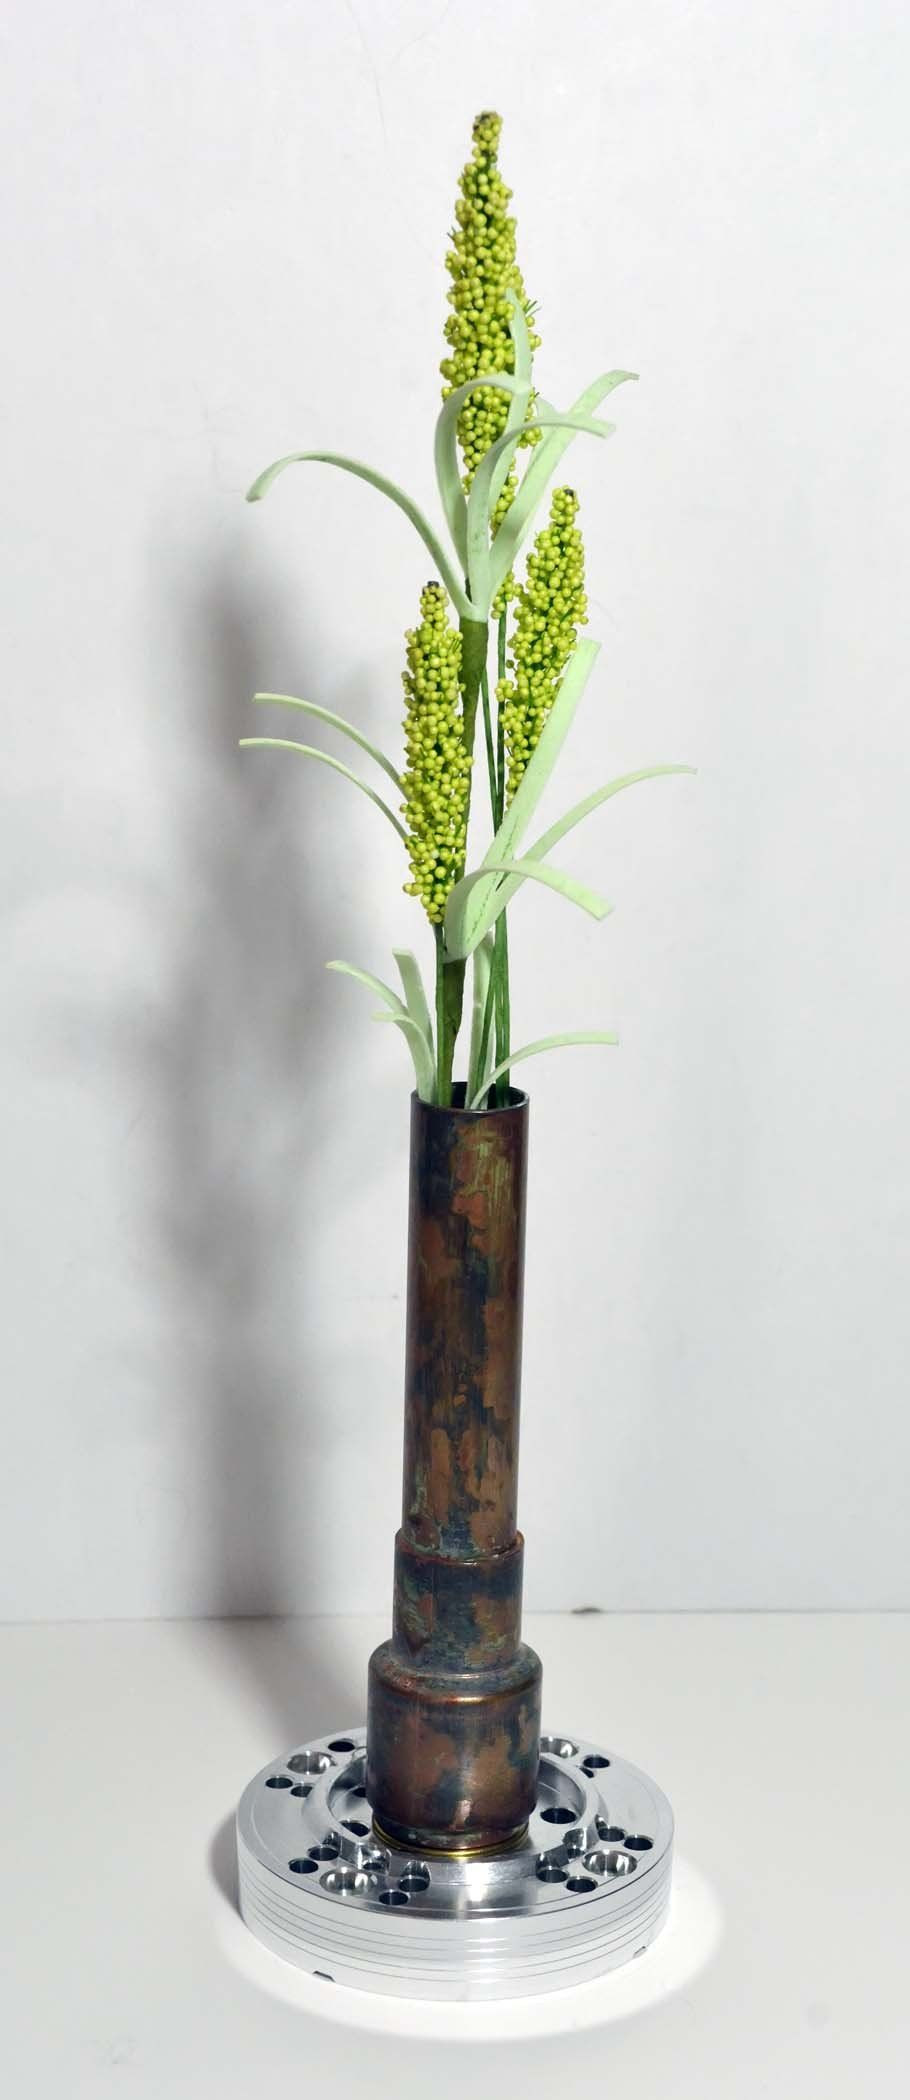 dried twigs for vases of steampunk style decorative dried bud vase made from recycled for beautiful unique dried bud or candle vase holder not to be used with water artificial flowers included